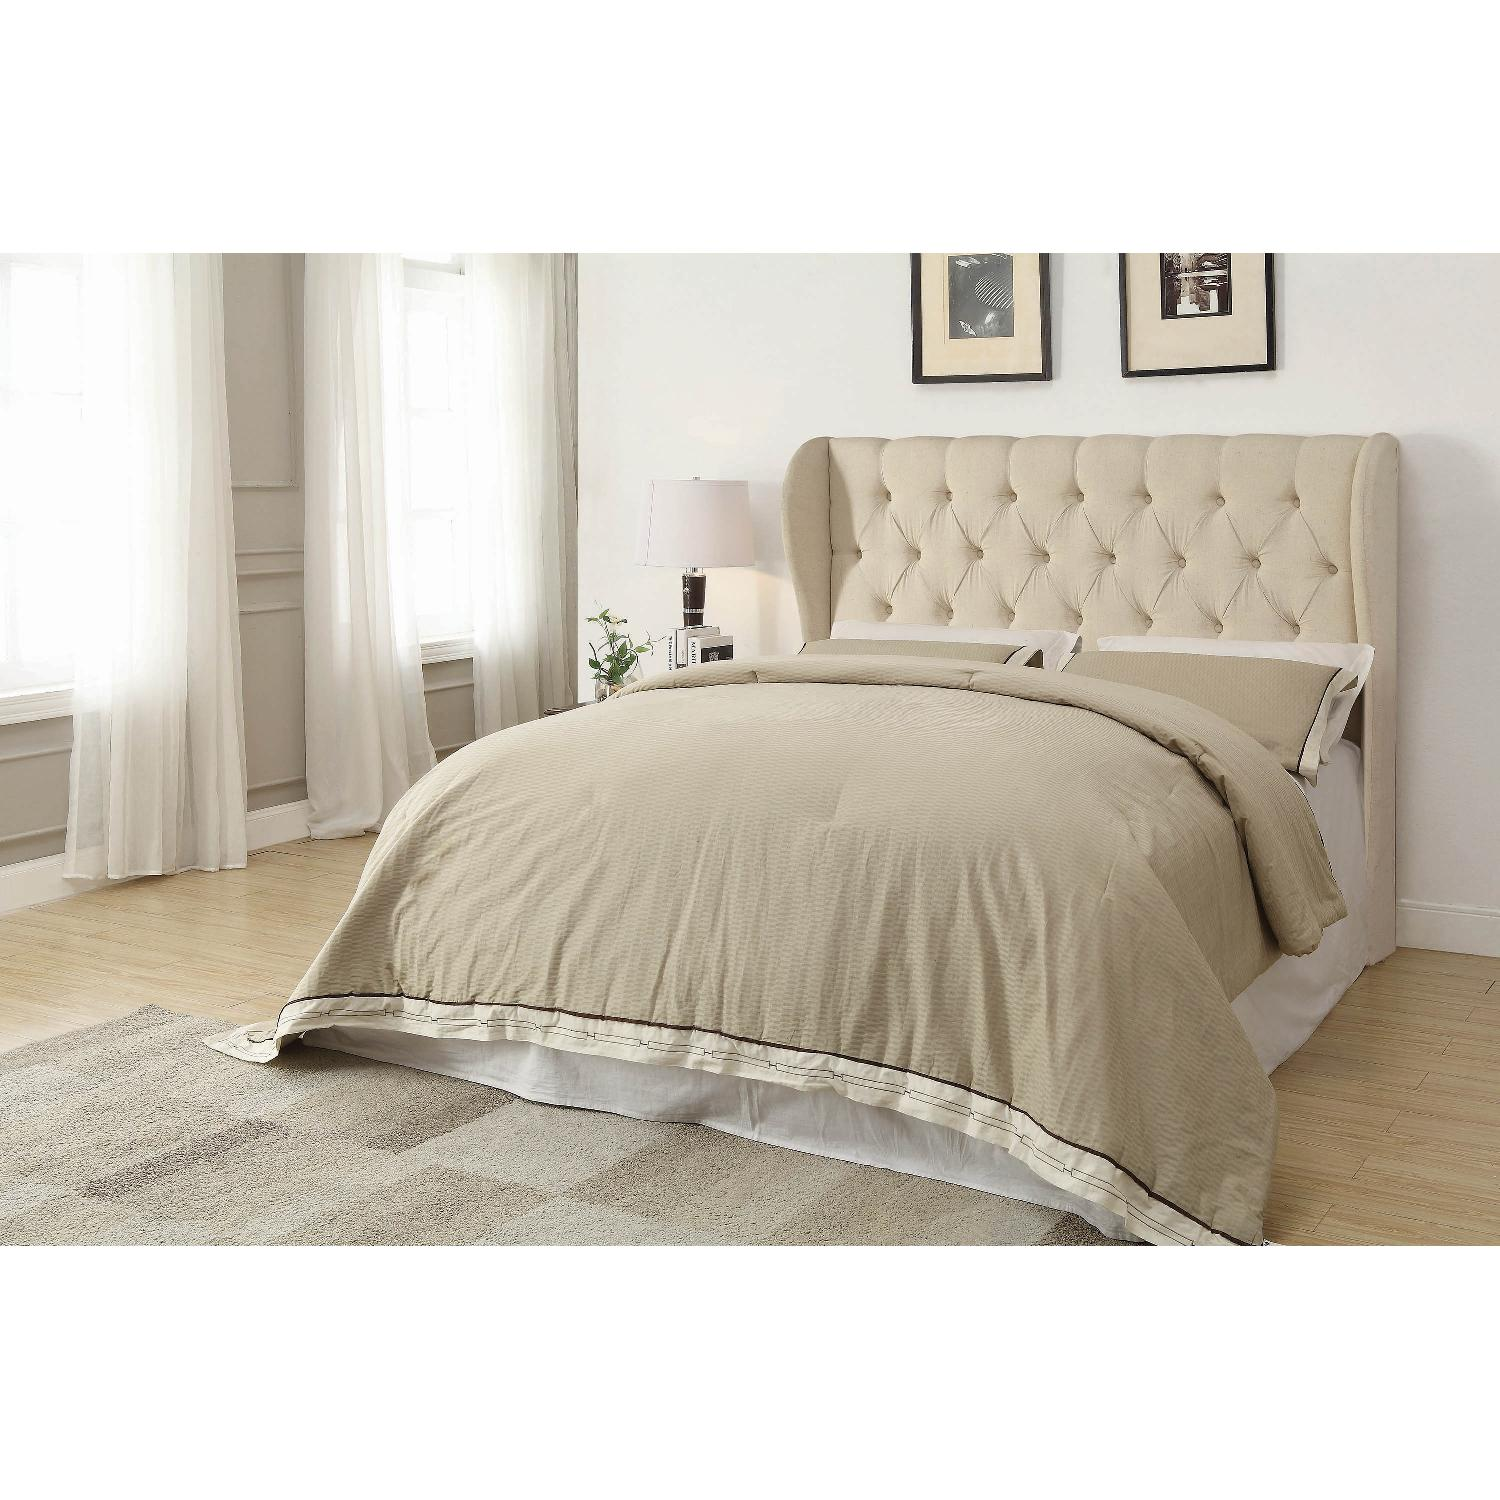 Coaster Murietta Beige Upholstered King Headboard - image-1